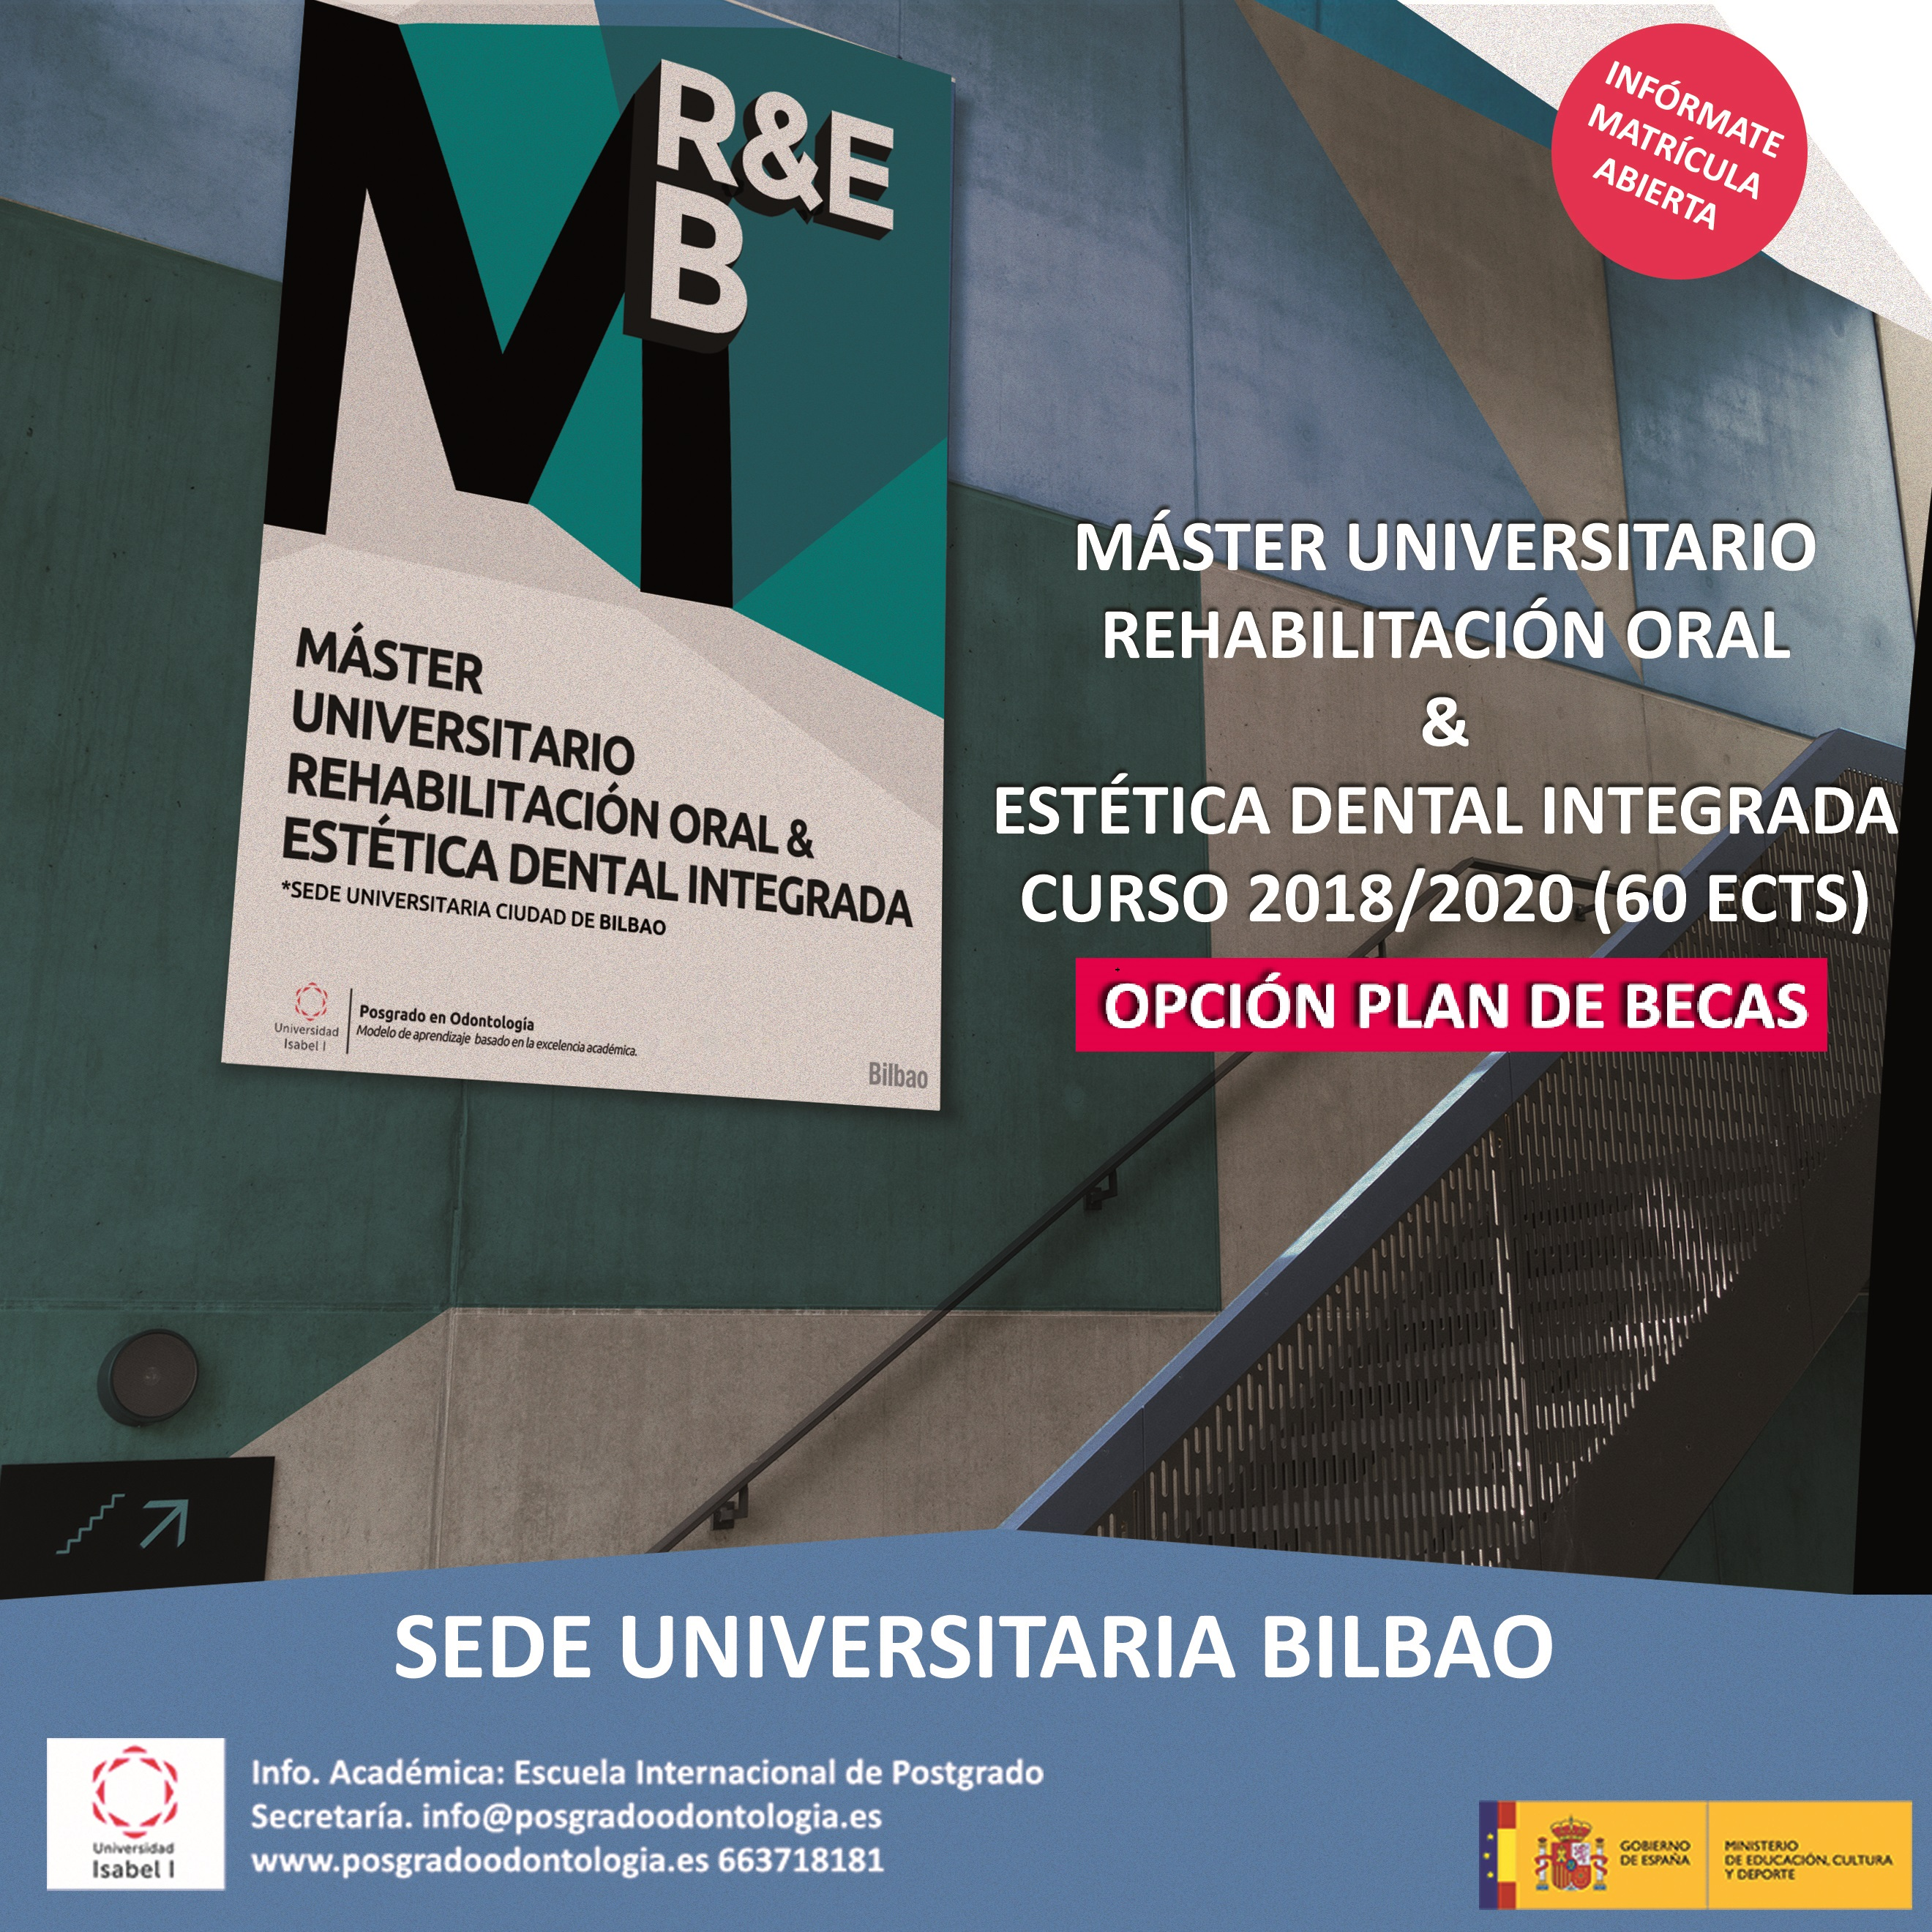 Rehabilitación Oral & Estética Dental Integrada - Universidad Isabel I Castilla 2018/2020